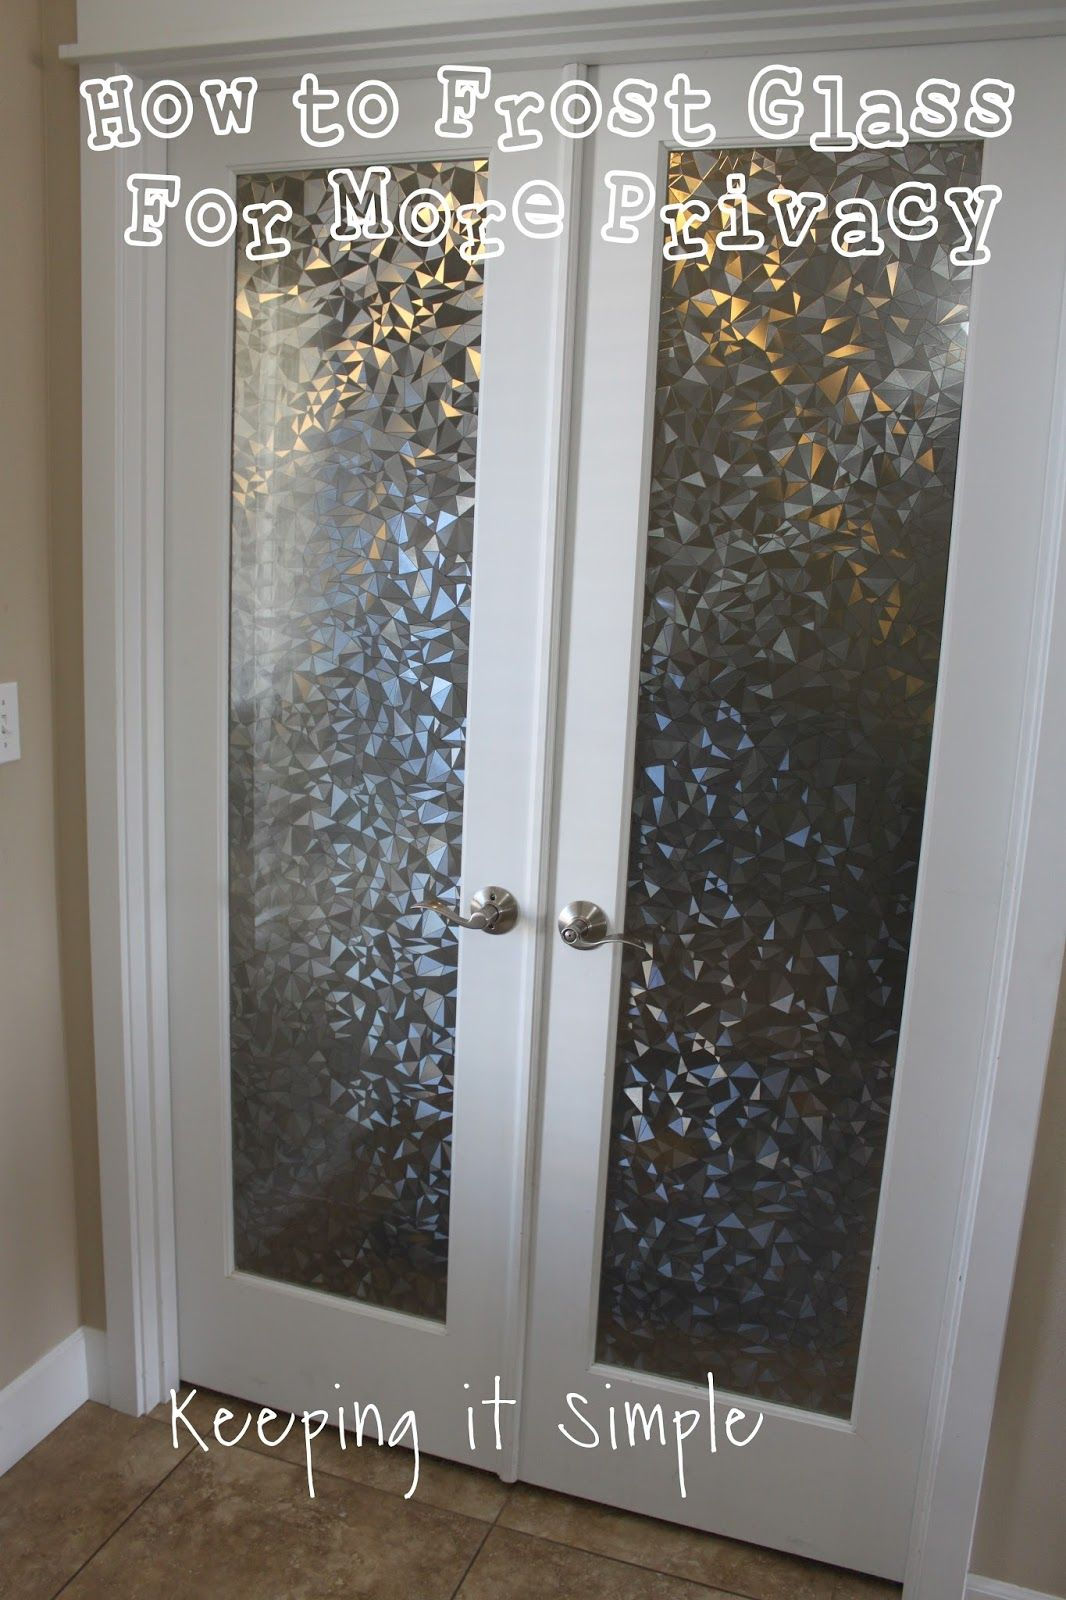 How To Frost Glass With Vinyl For More Privacy Keeping It Simple